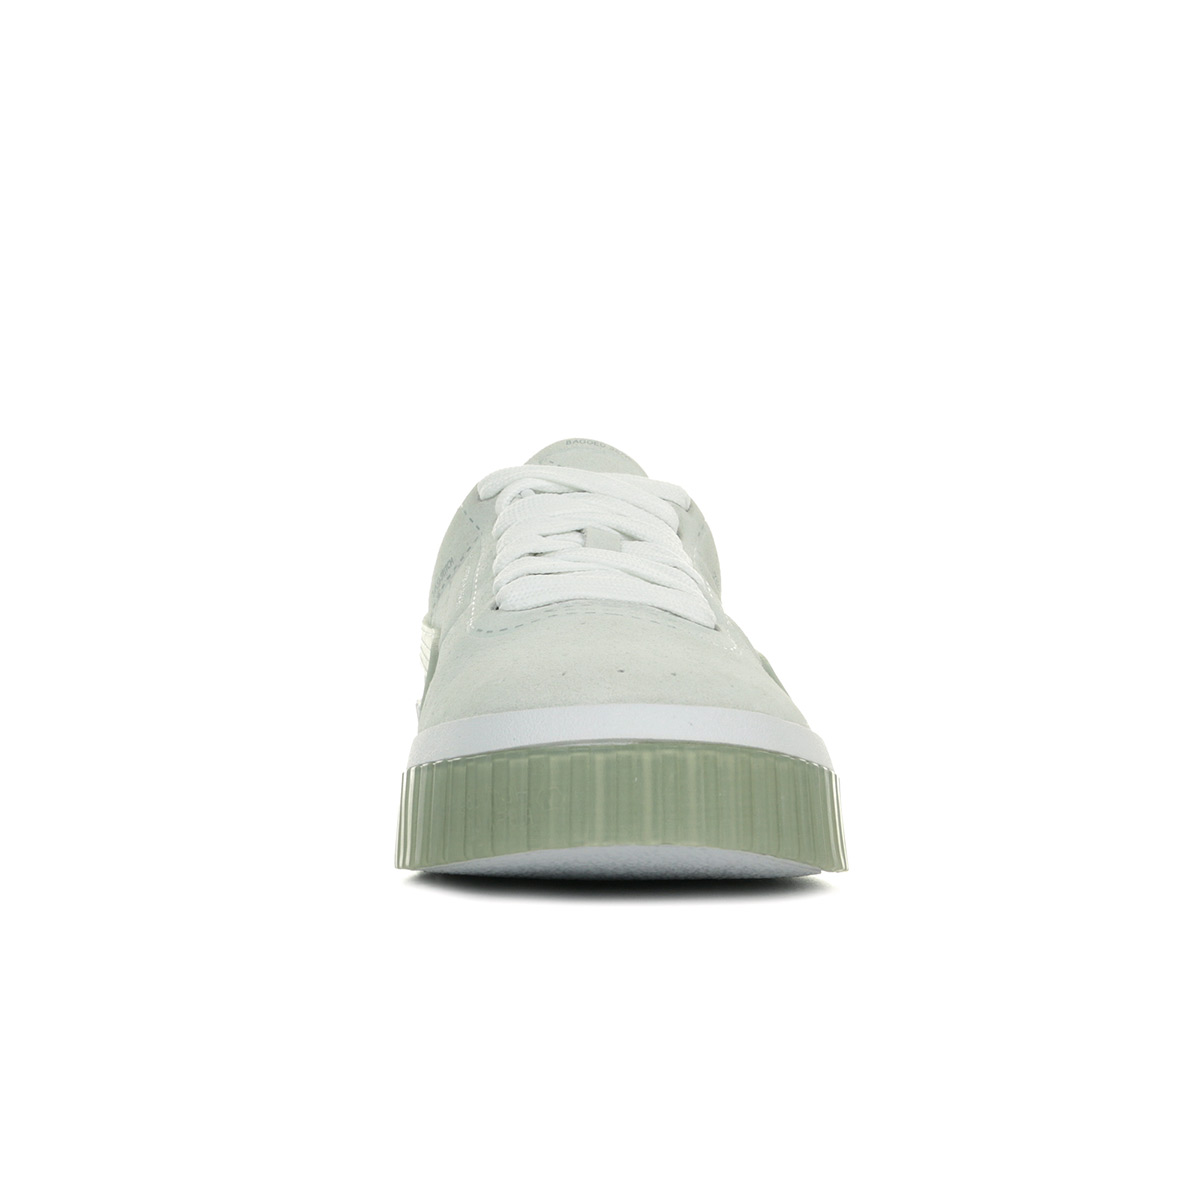 Puma Cali Patternmaster Wn's 36996501, Baskets mode femme